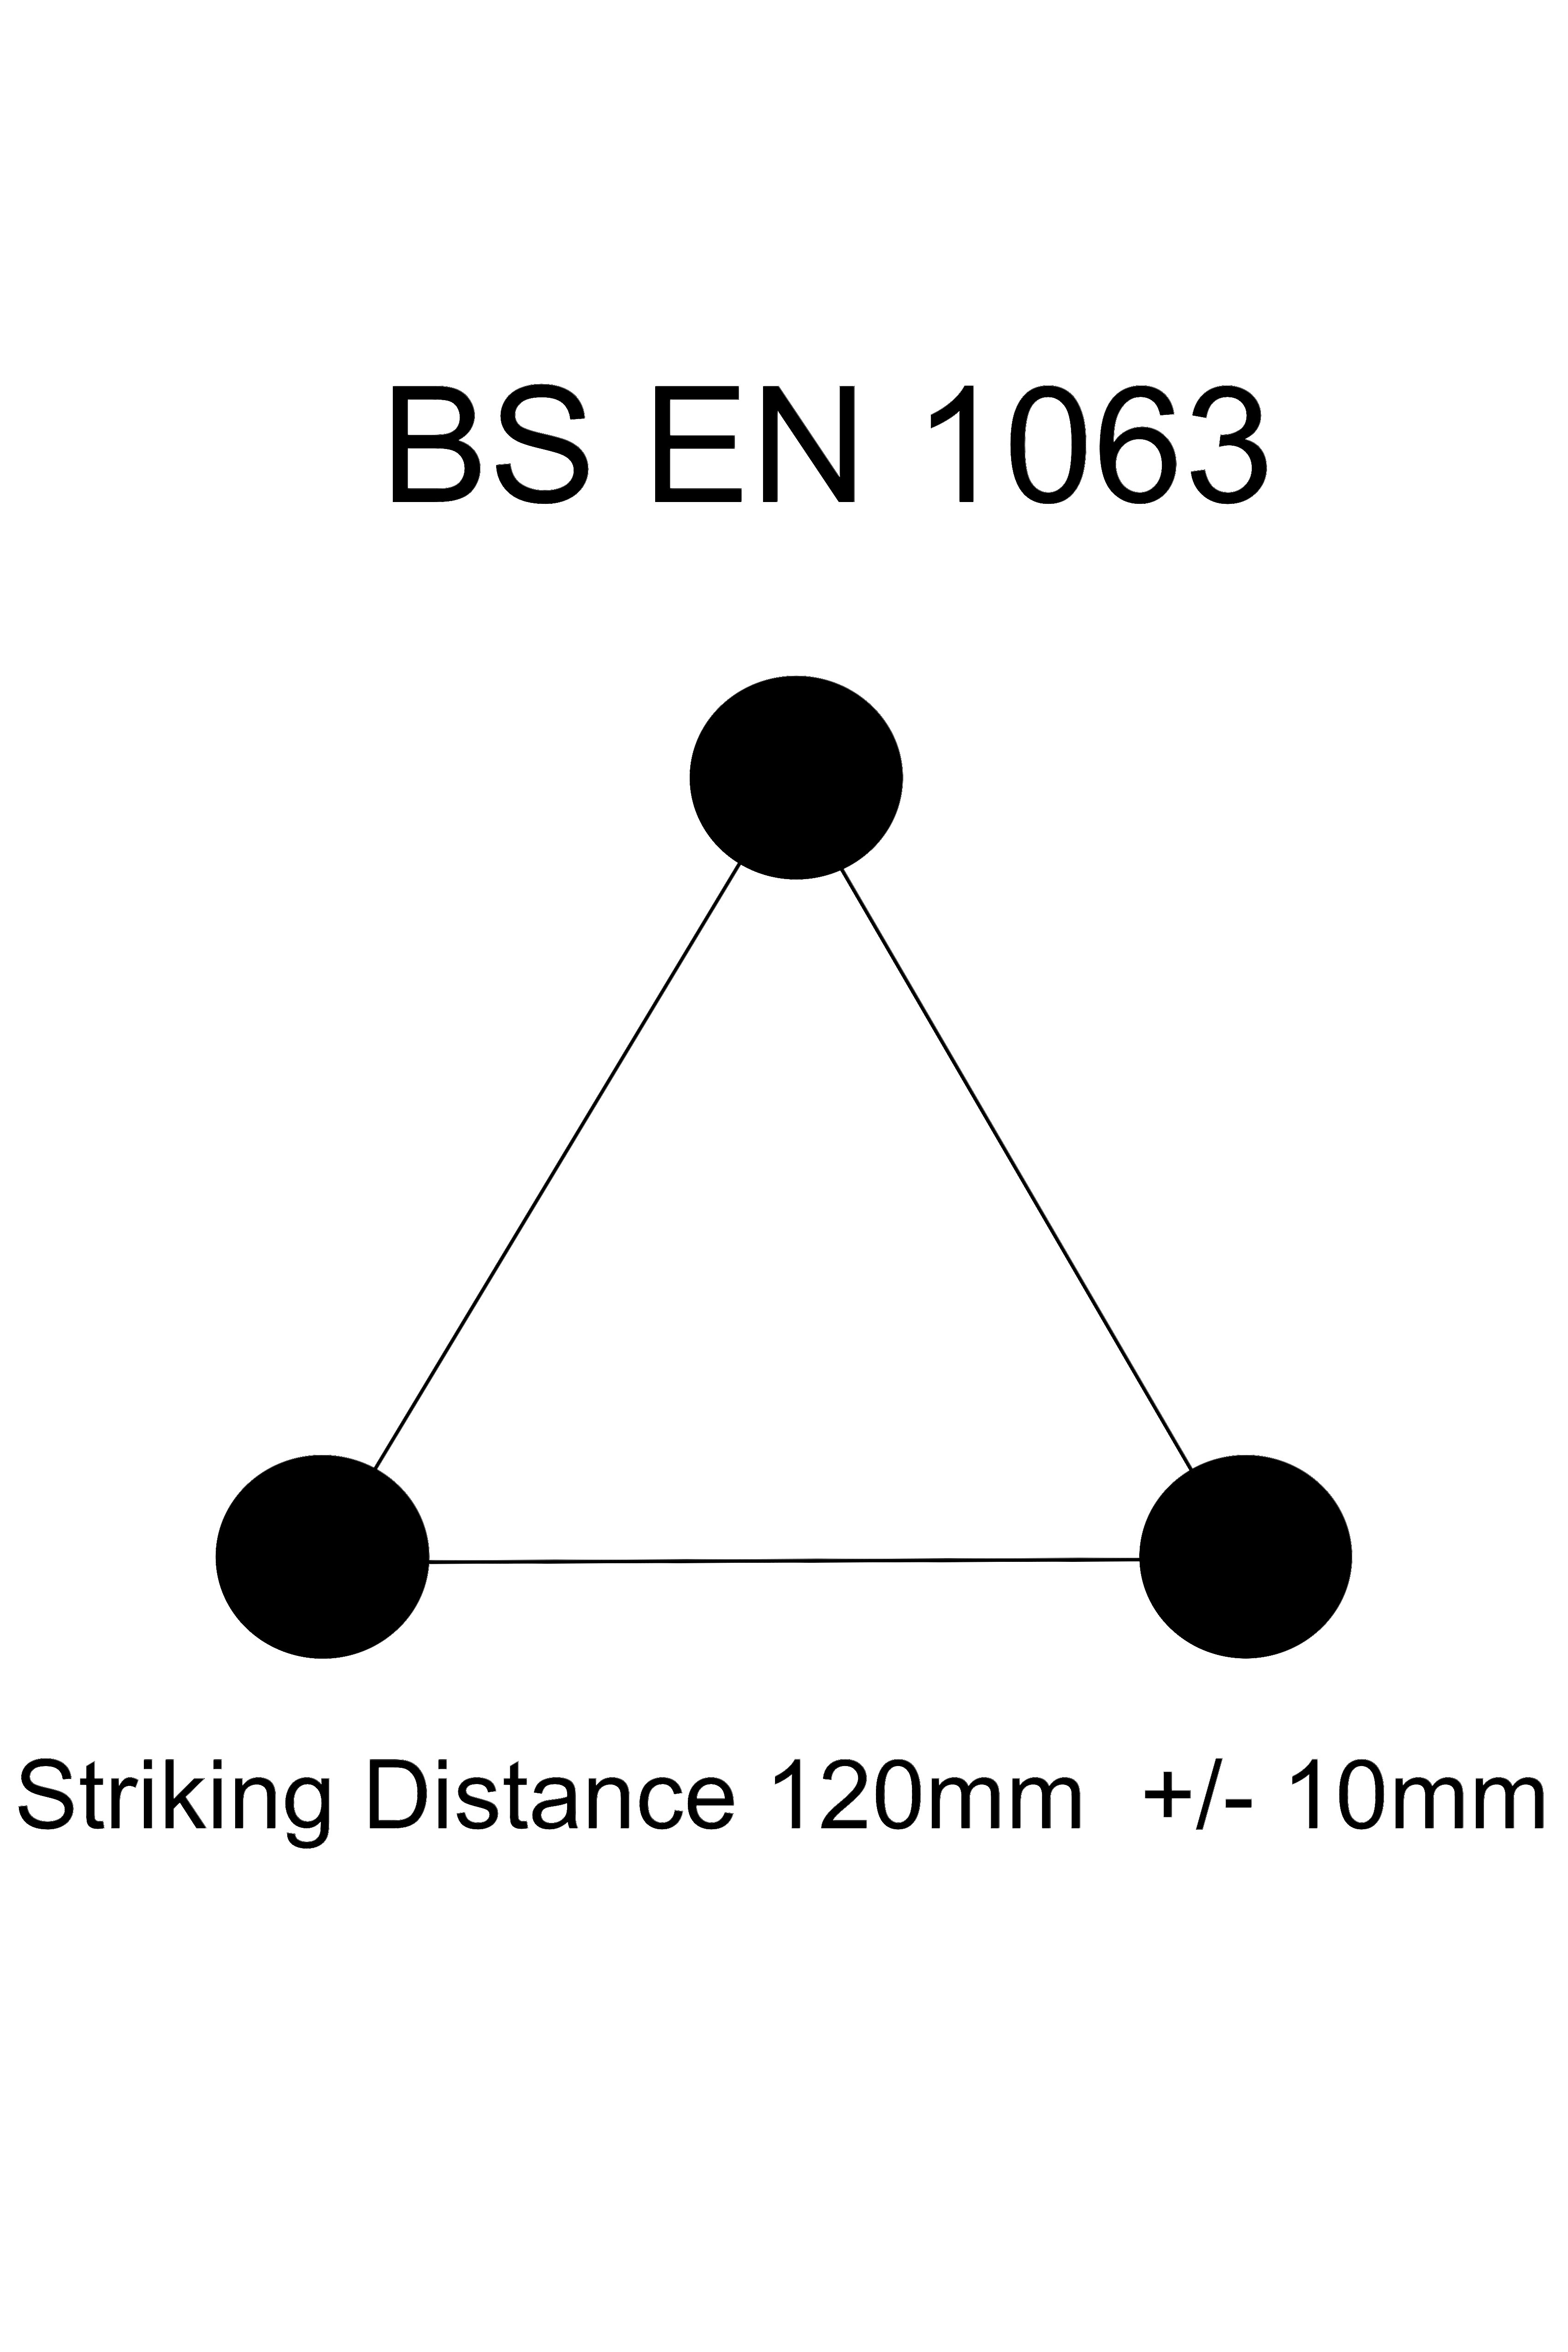 EN 1063 Test Triangle